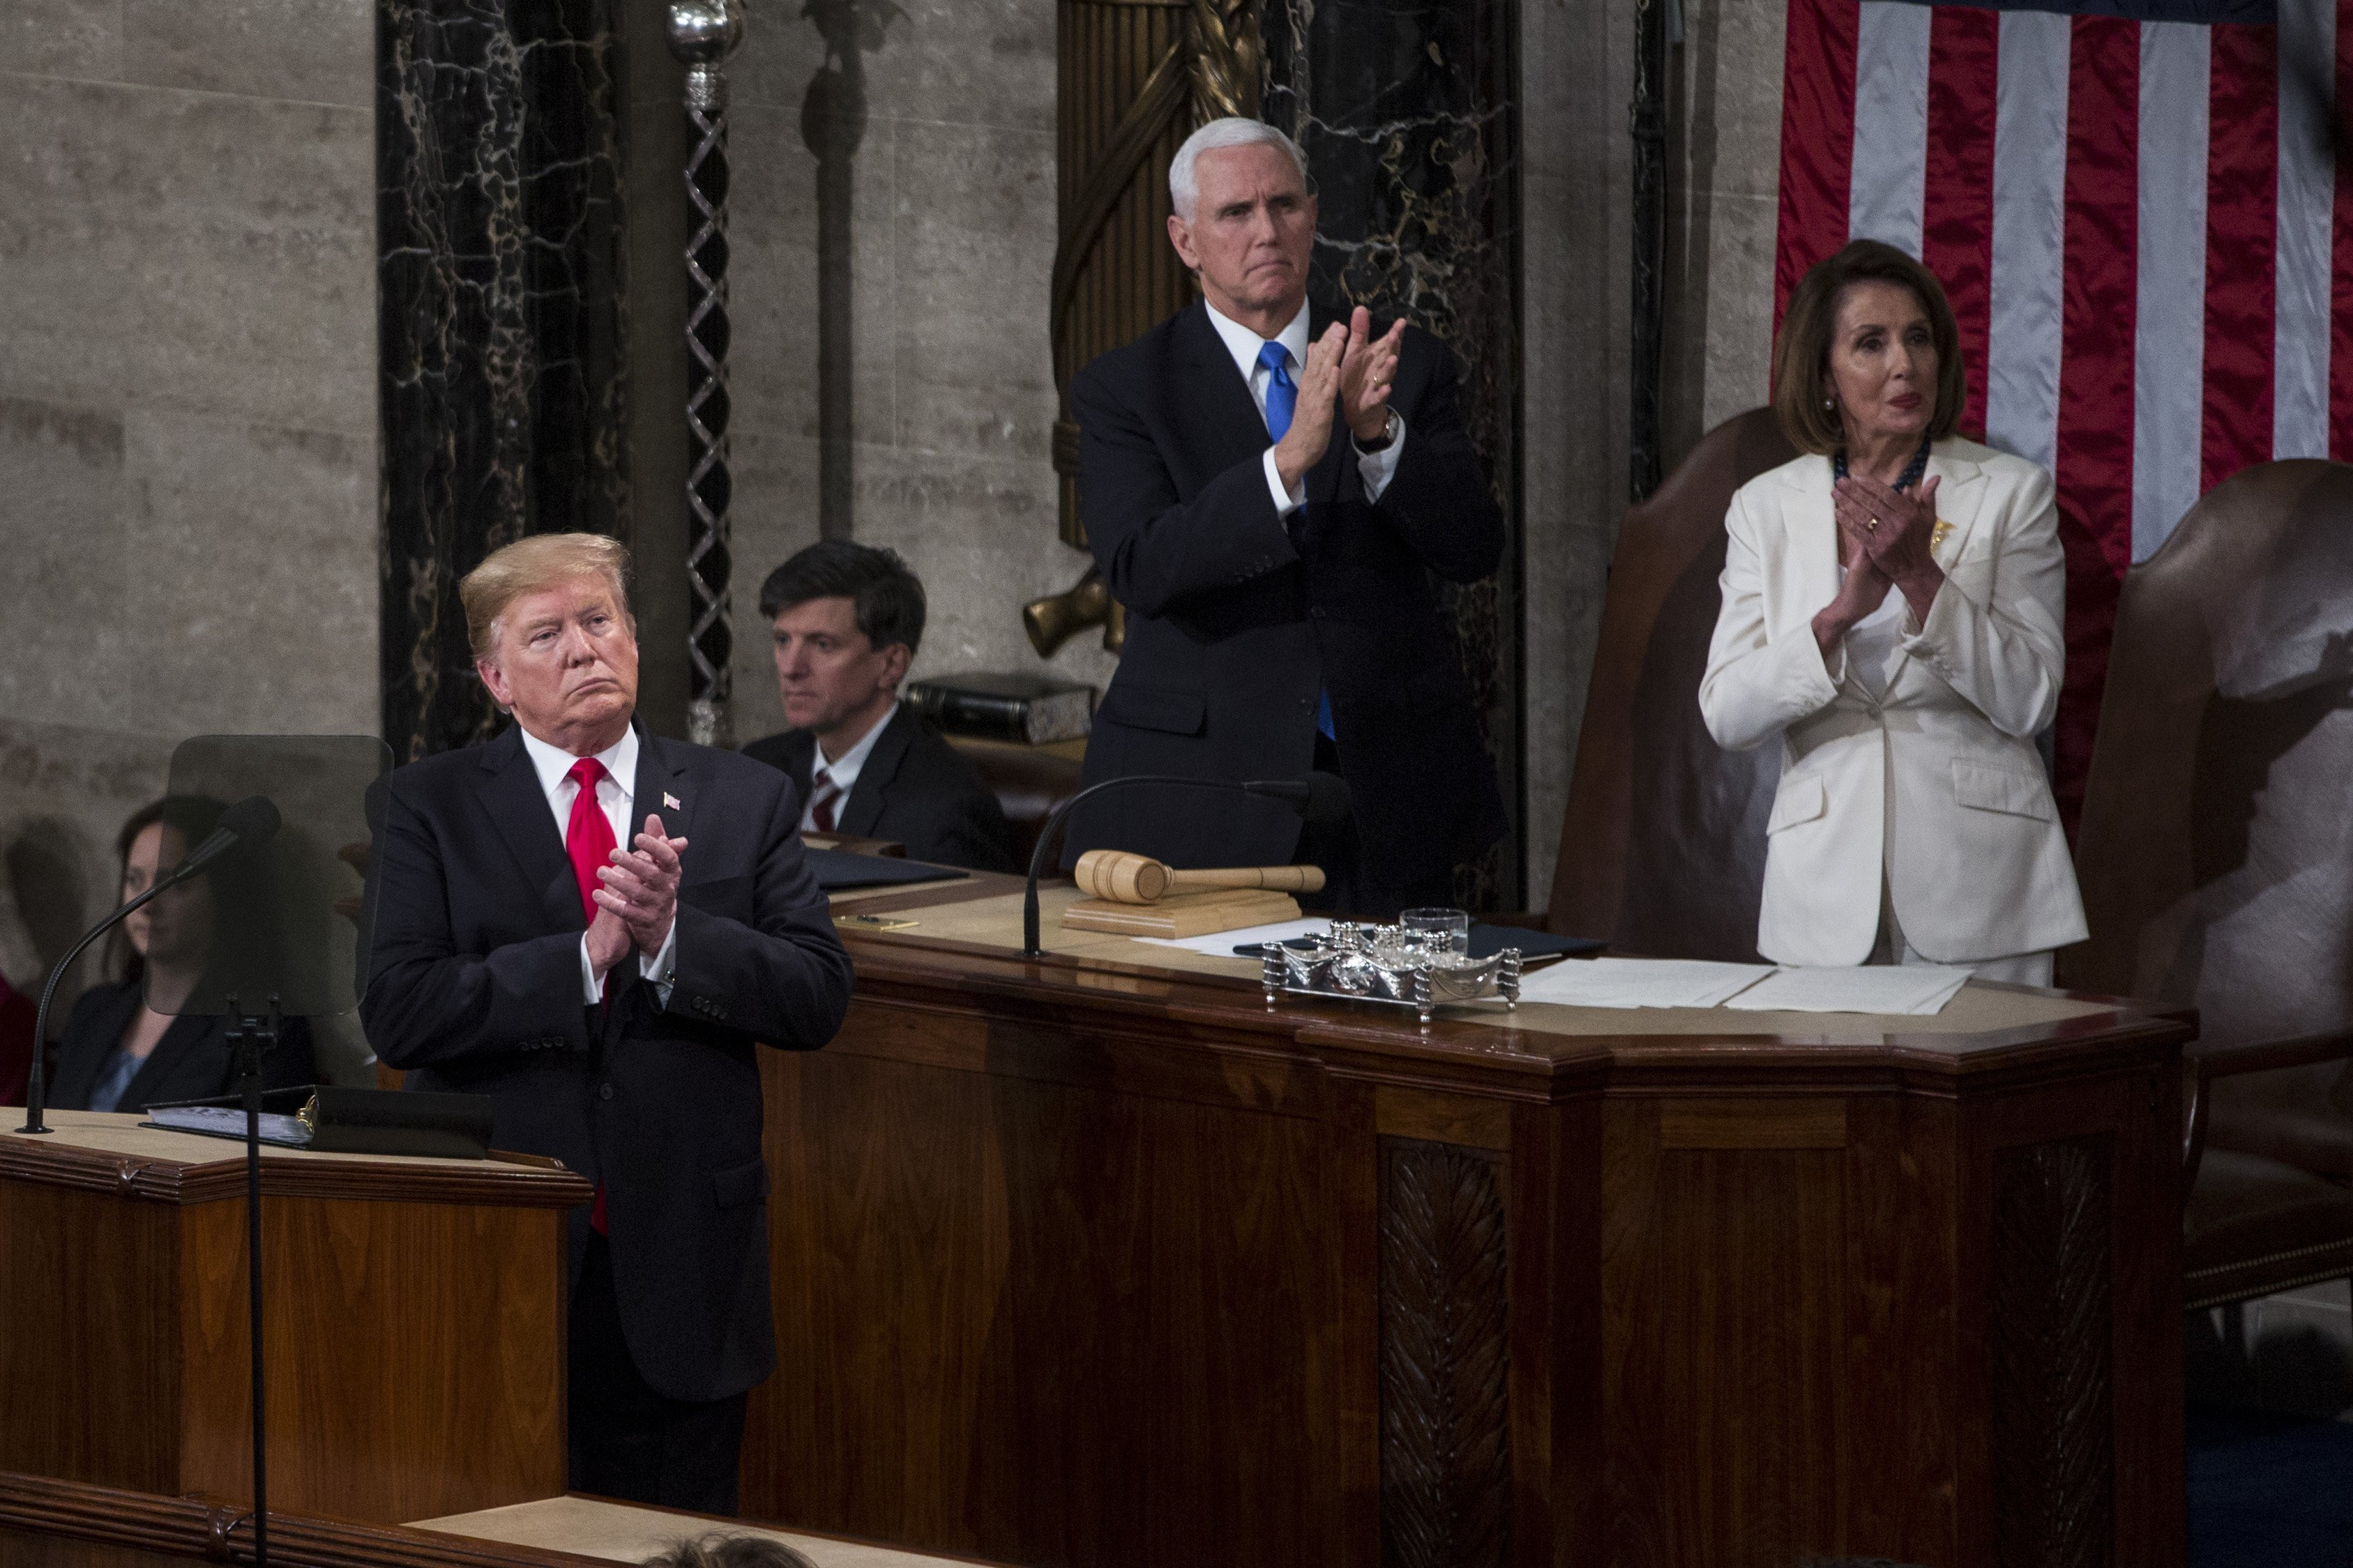 President Trump with Vice President Mike Pence and Speaker of the House Nancy Pelosi applauding Buzz Aldrin | Photo: Getty Images